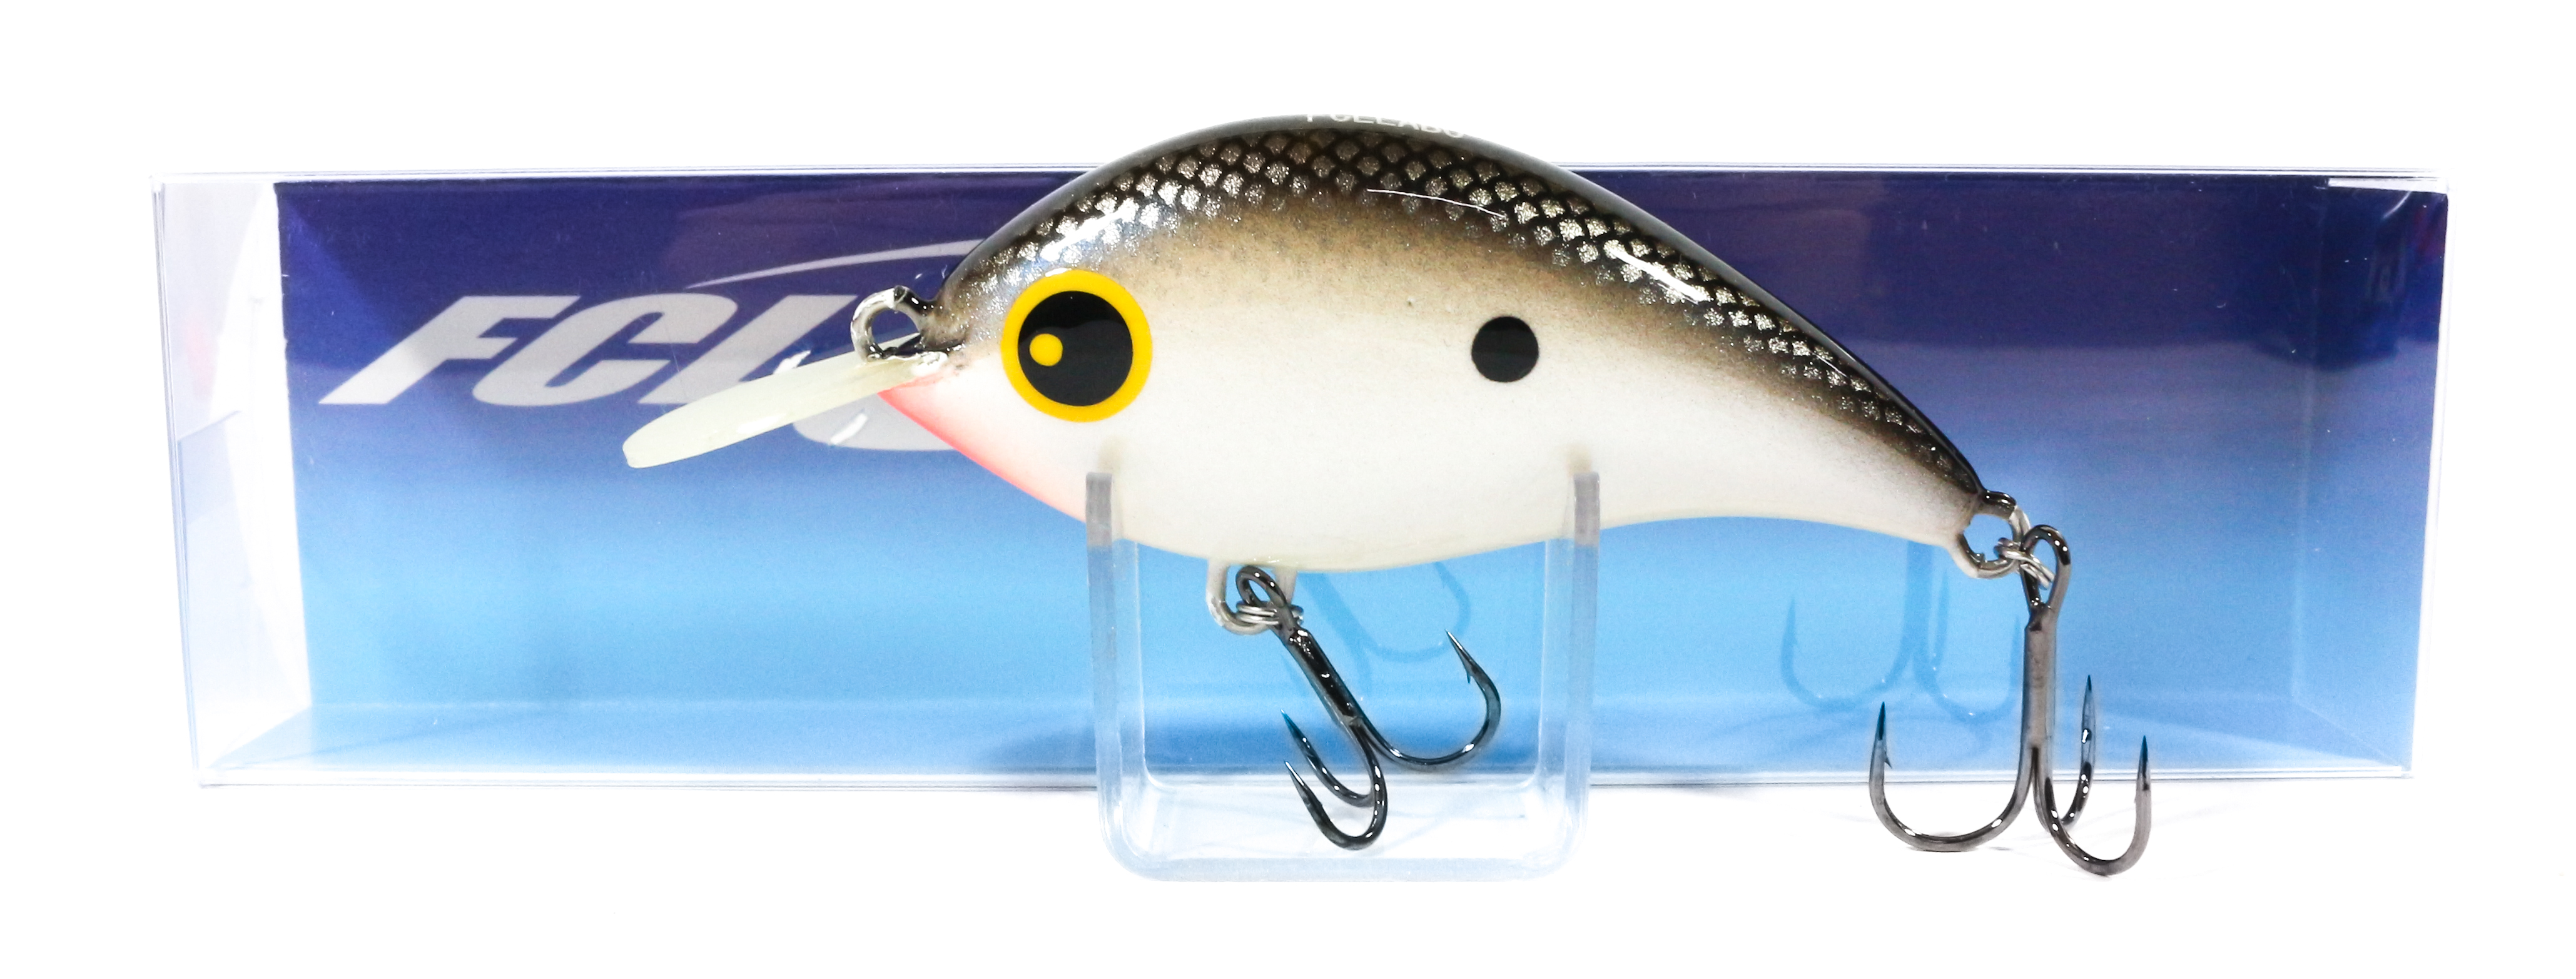 FCL Labo Lure TKC 70 Floating Lure WBK (3986)